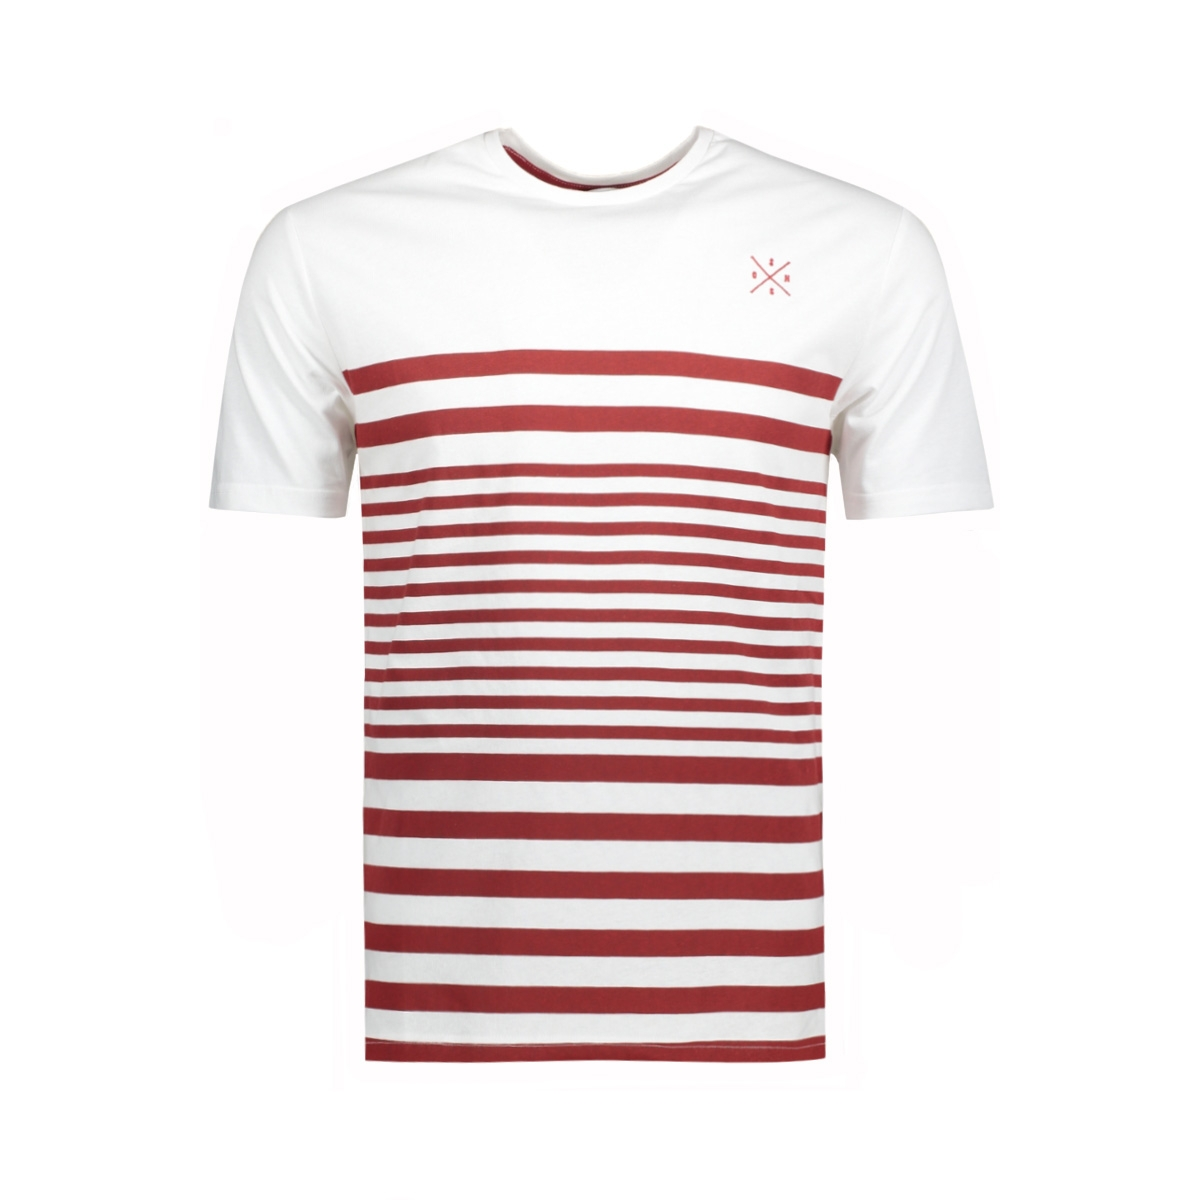 onssympson stripe fitted tee 22009381 only & sons t-shirt white/red dahlia